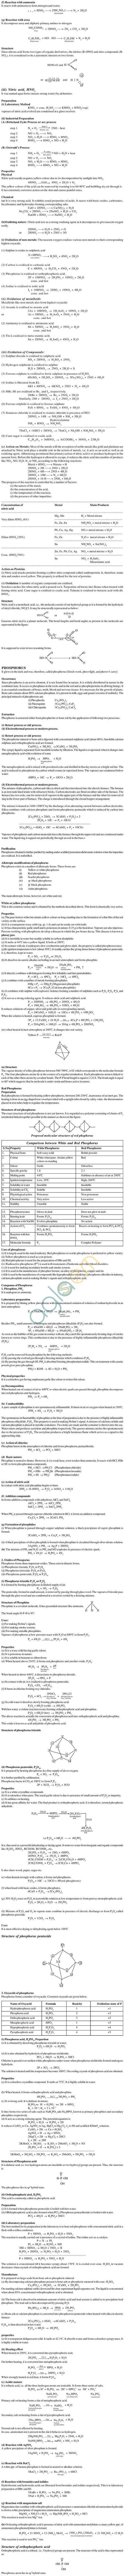 Chemistry Study Material - Chapter 9